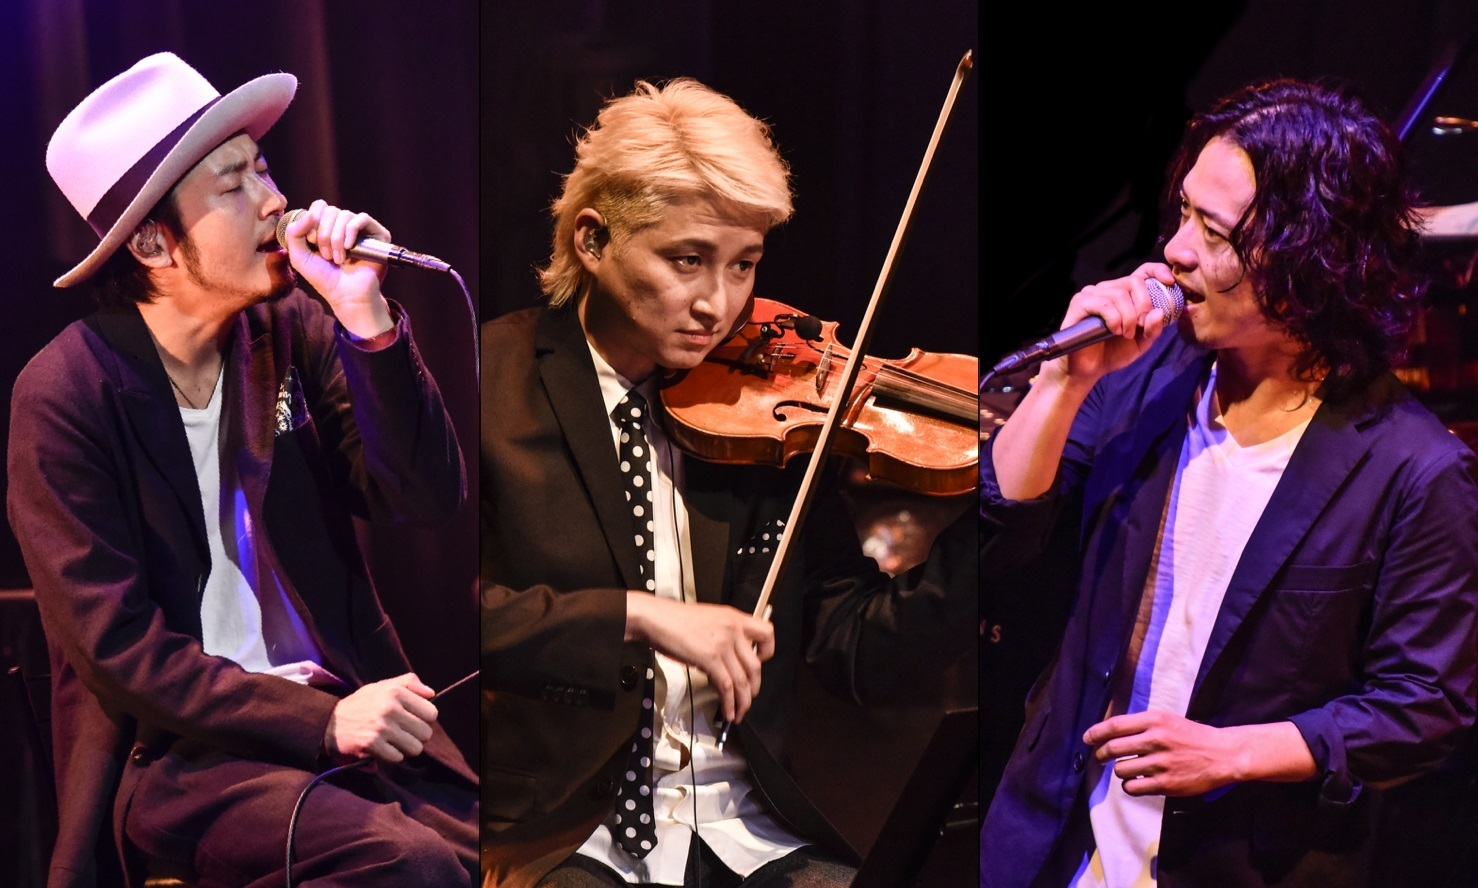 大木伸夫(ACIDMAN)× 山田将司(THE BACK HORN)and NAOTO QUARTET